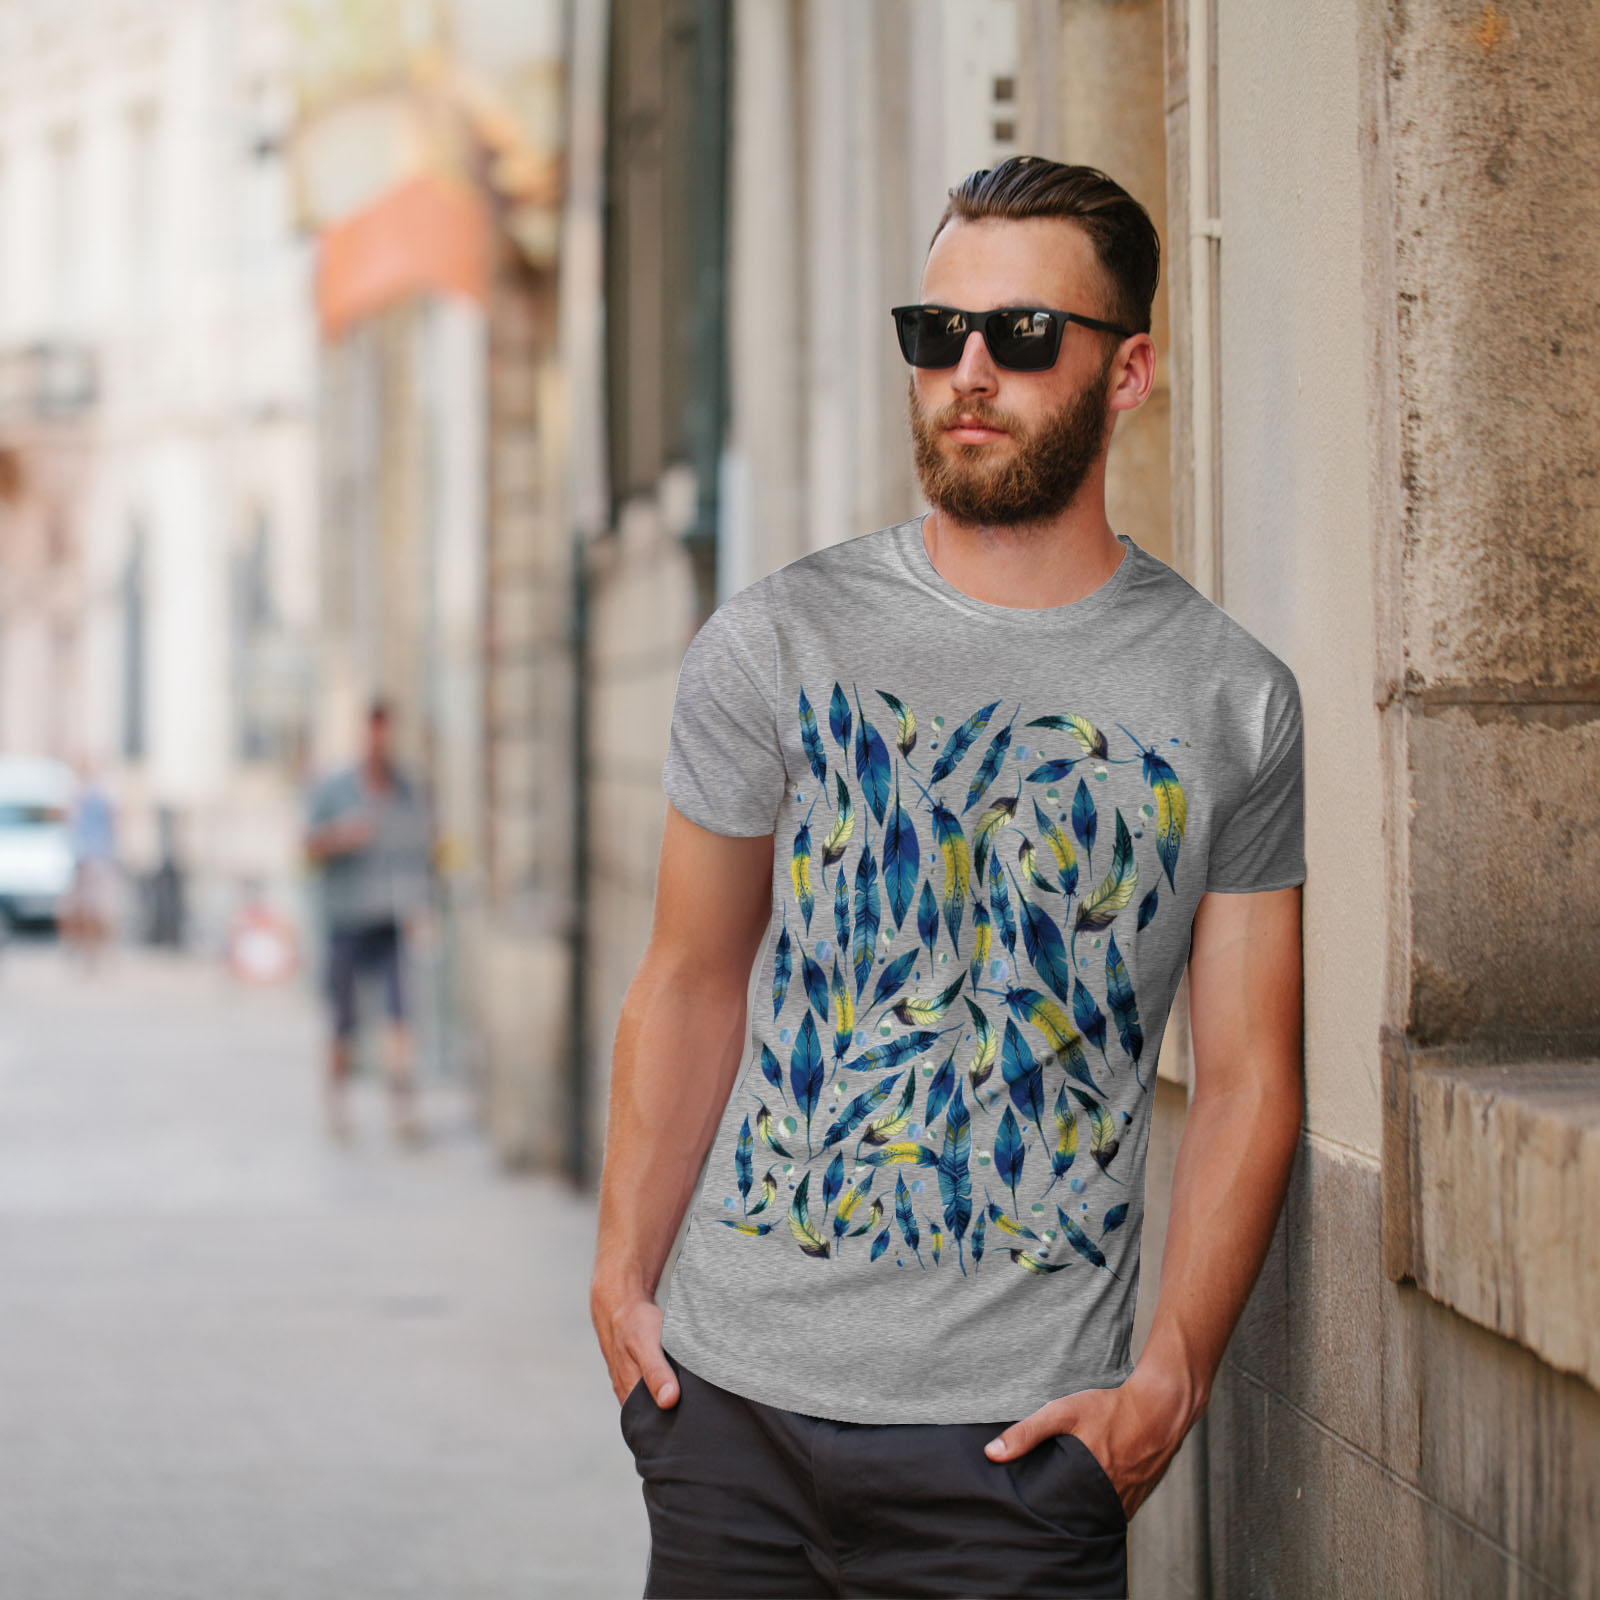 Wellcoda-fashion-Plumes-T-shirt-homme-Abstract-Design-graphique-imprime-Tee miniature 17